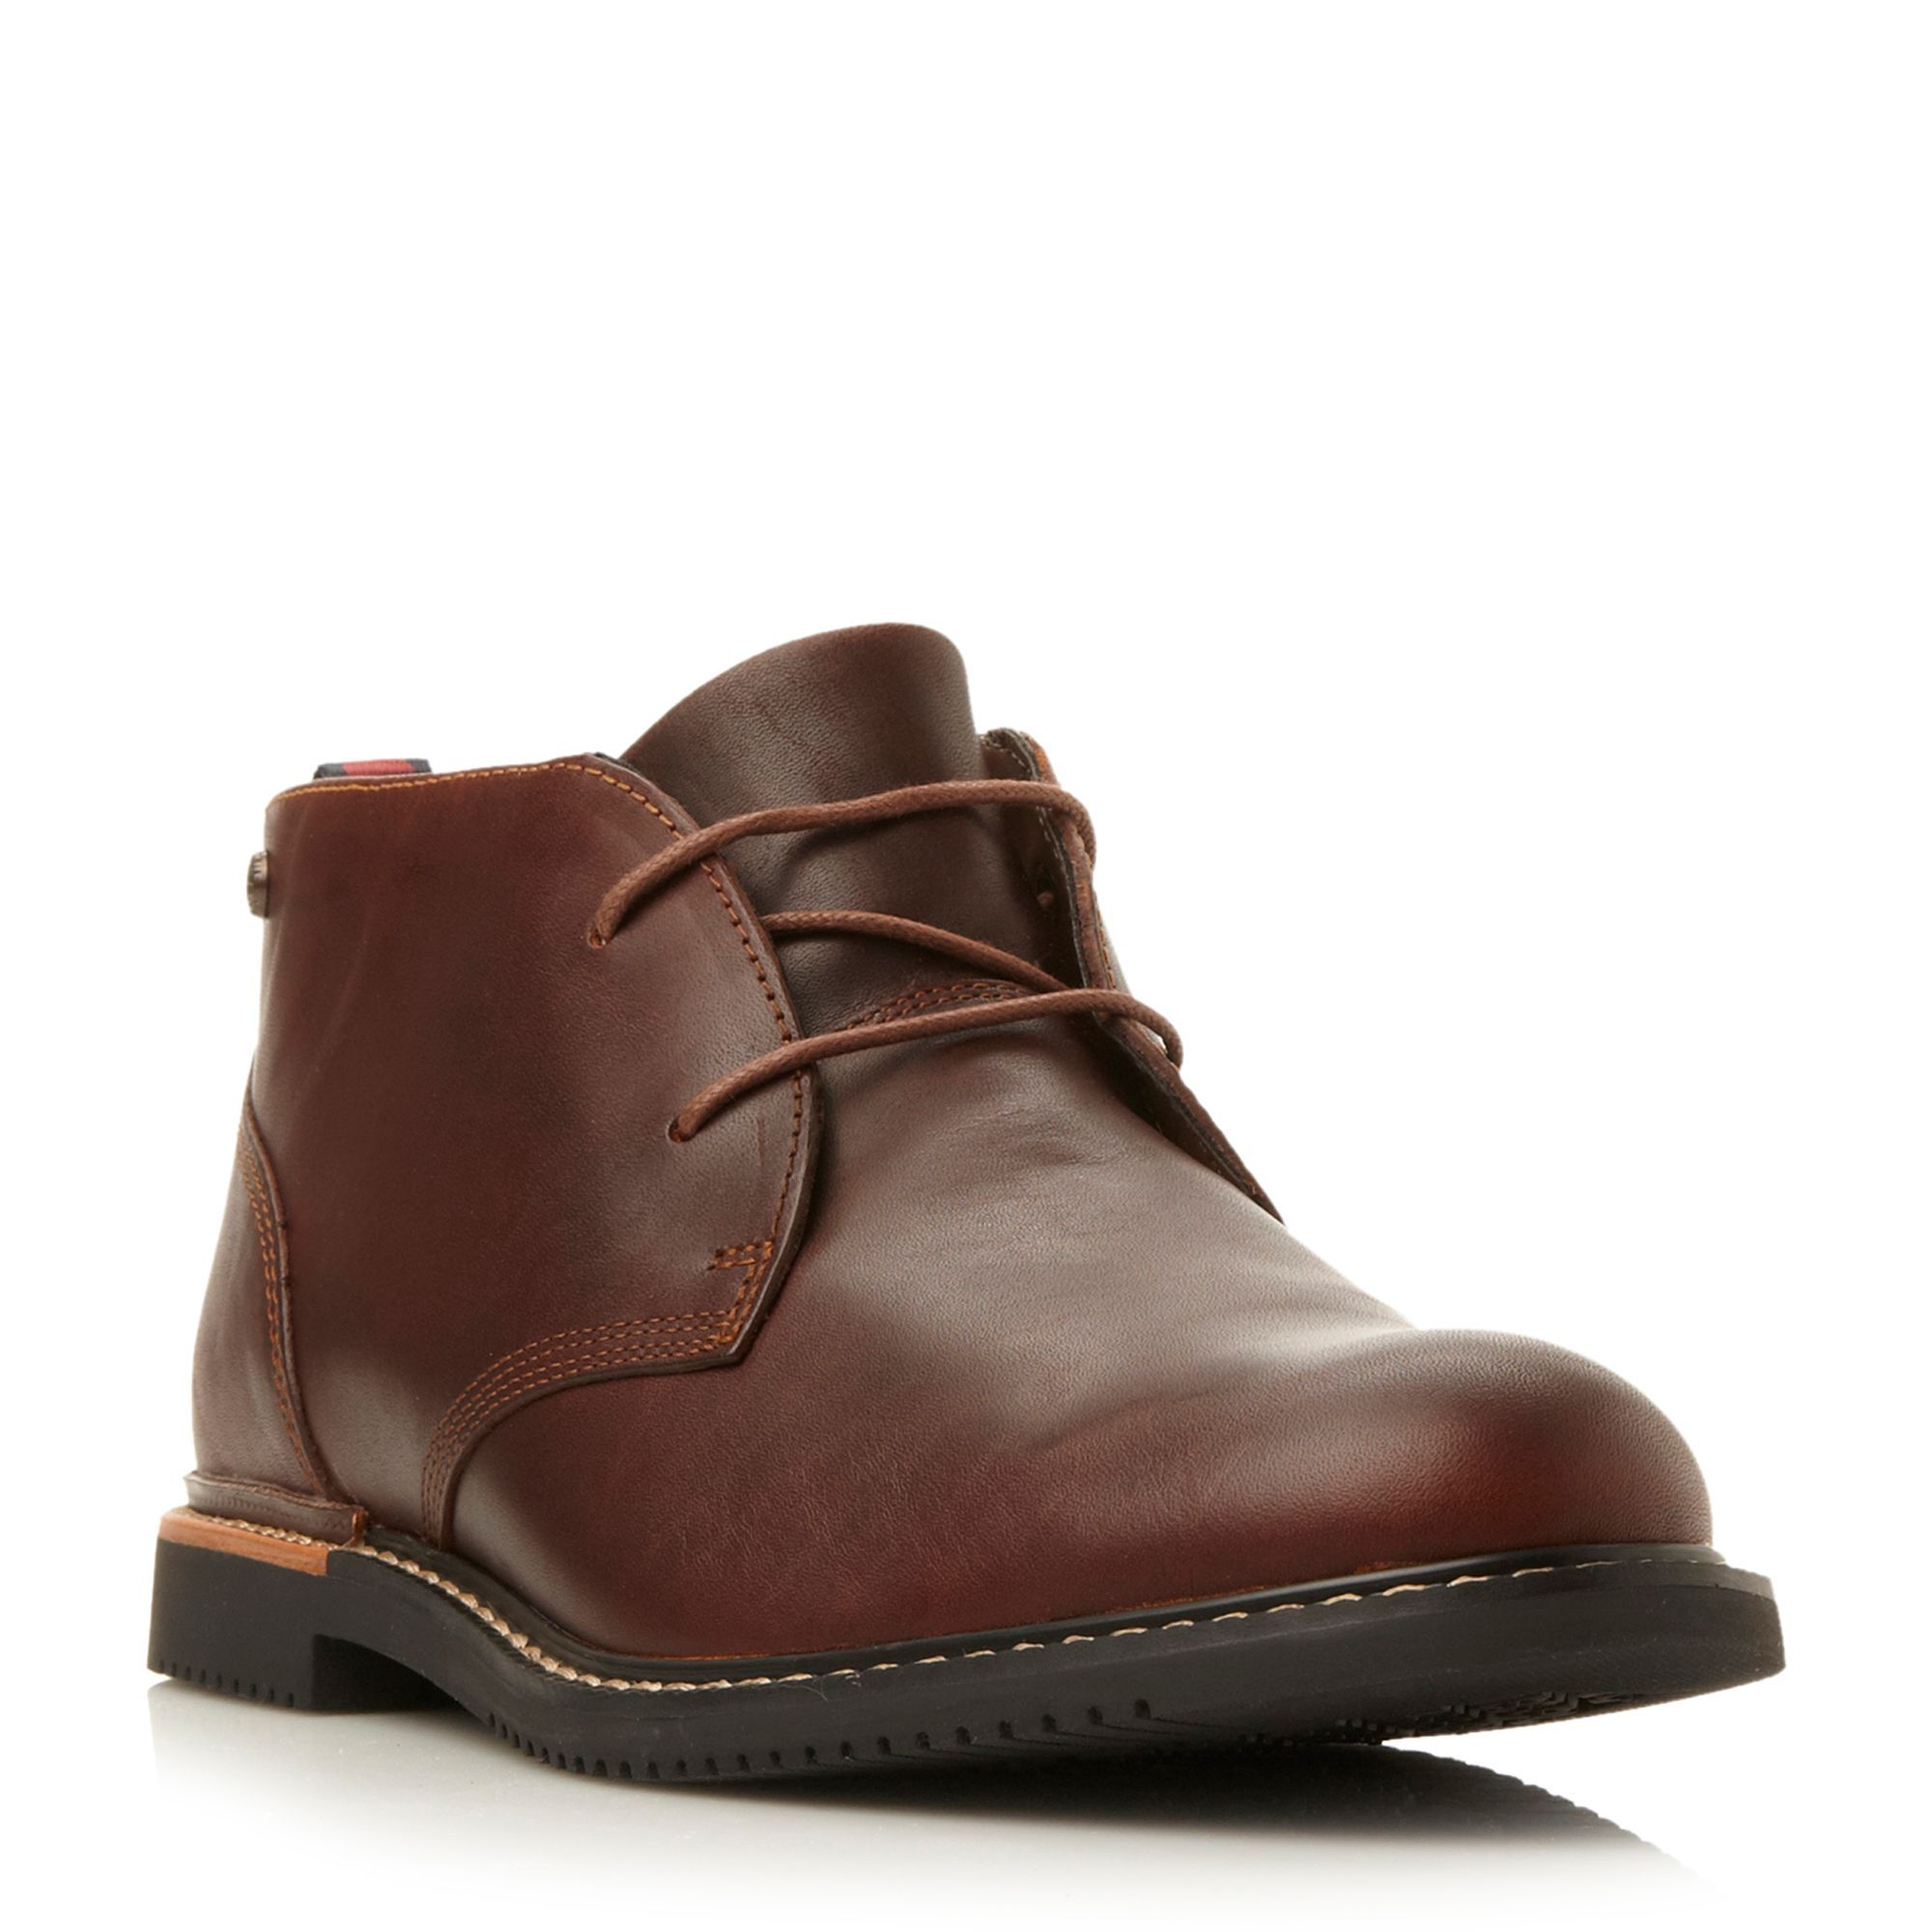 Leather find Marque Bottes Chukka homme